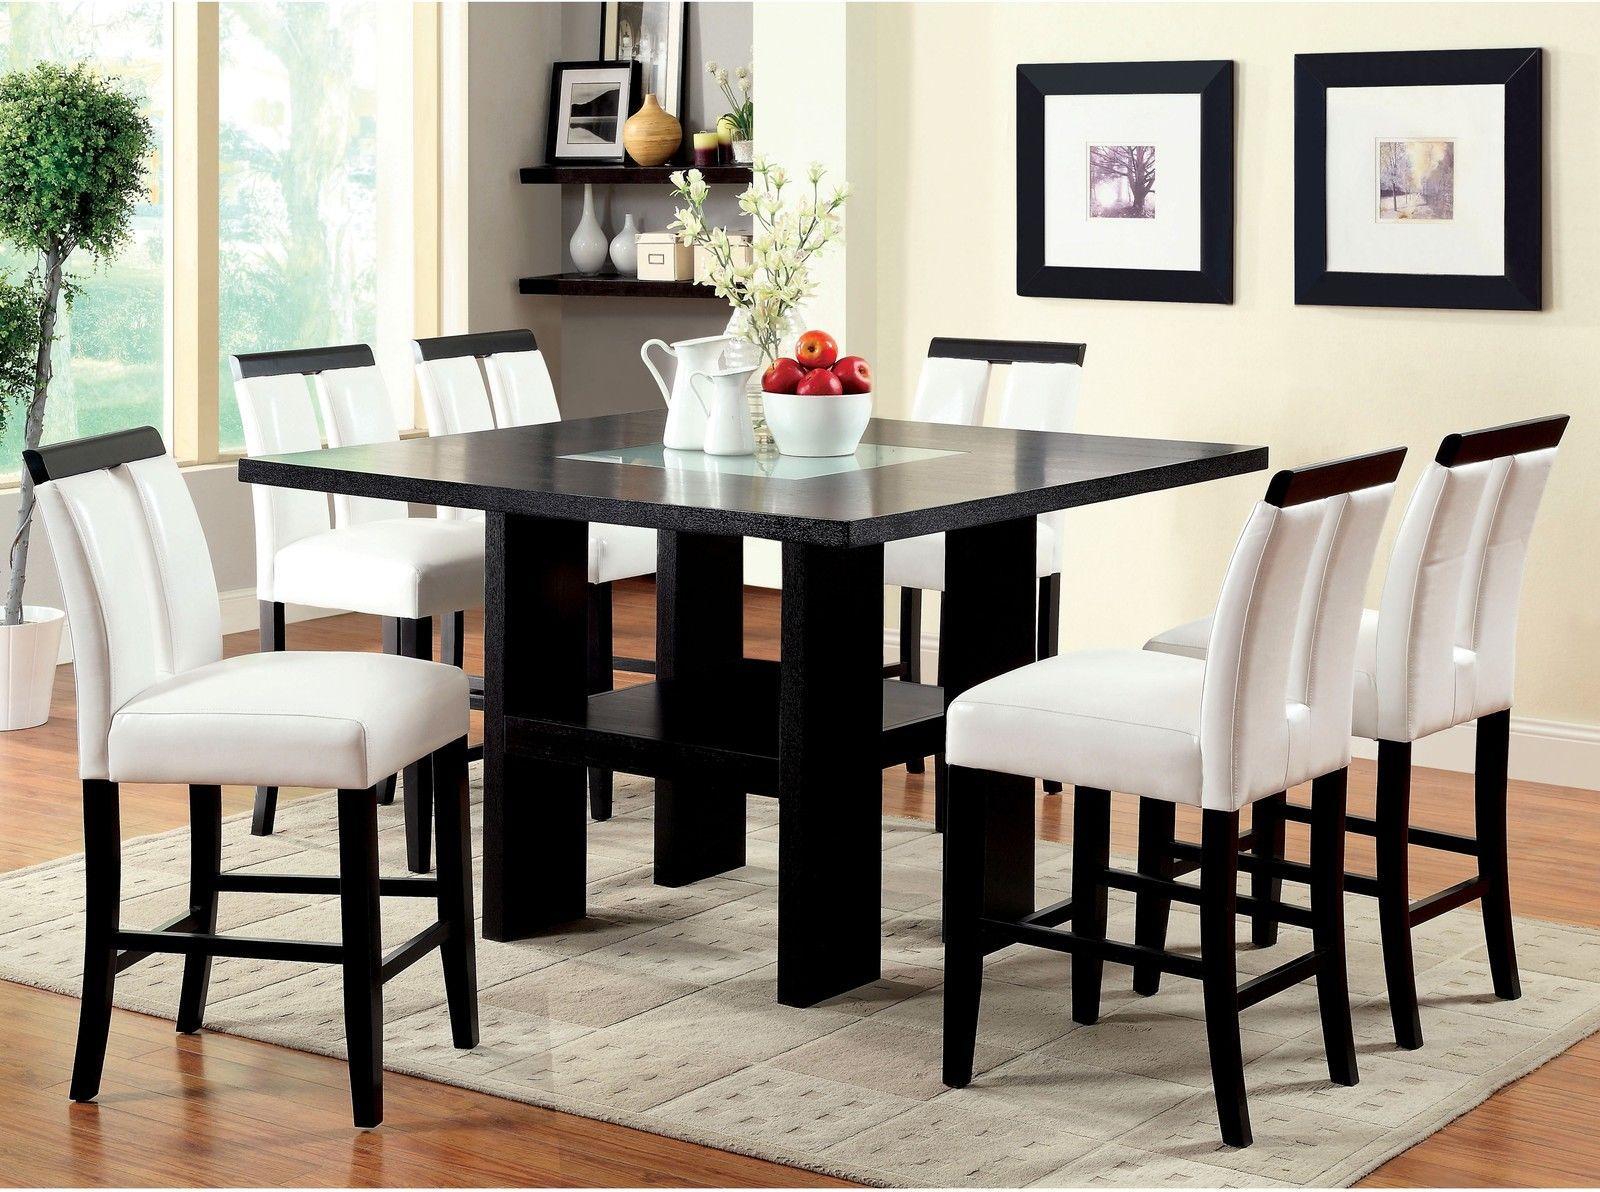 Dining room set counter height chairs black white faux for Black white dining room set